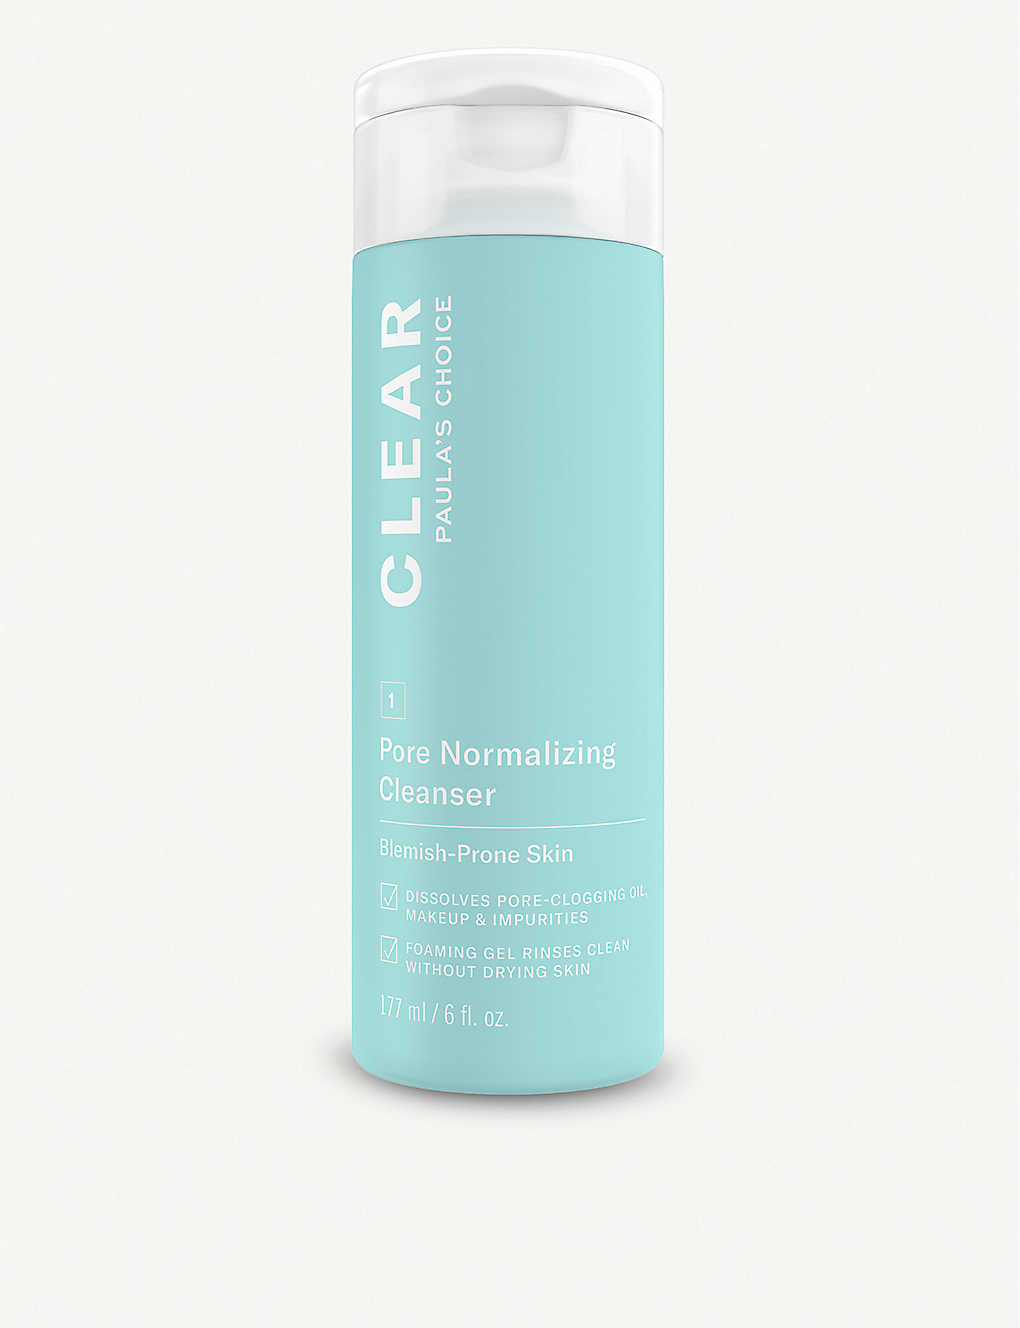 PAULA'S CHOICE: CLEAR Pore Normalizing Cleanser 177ml